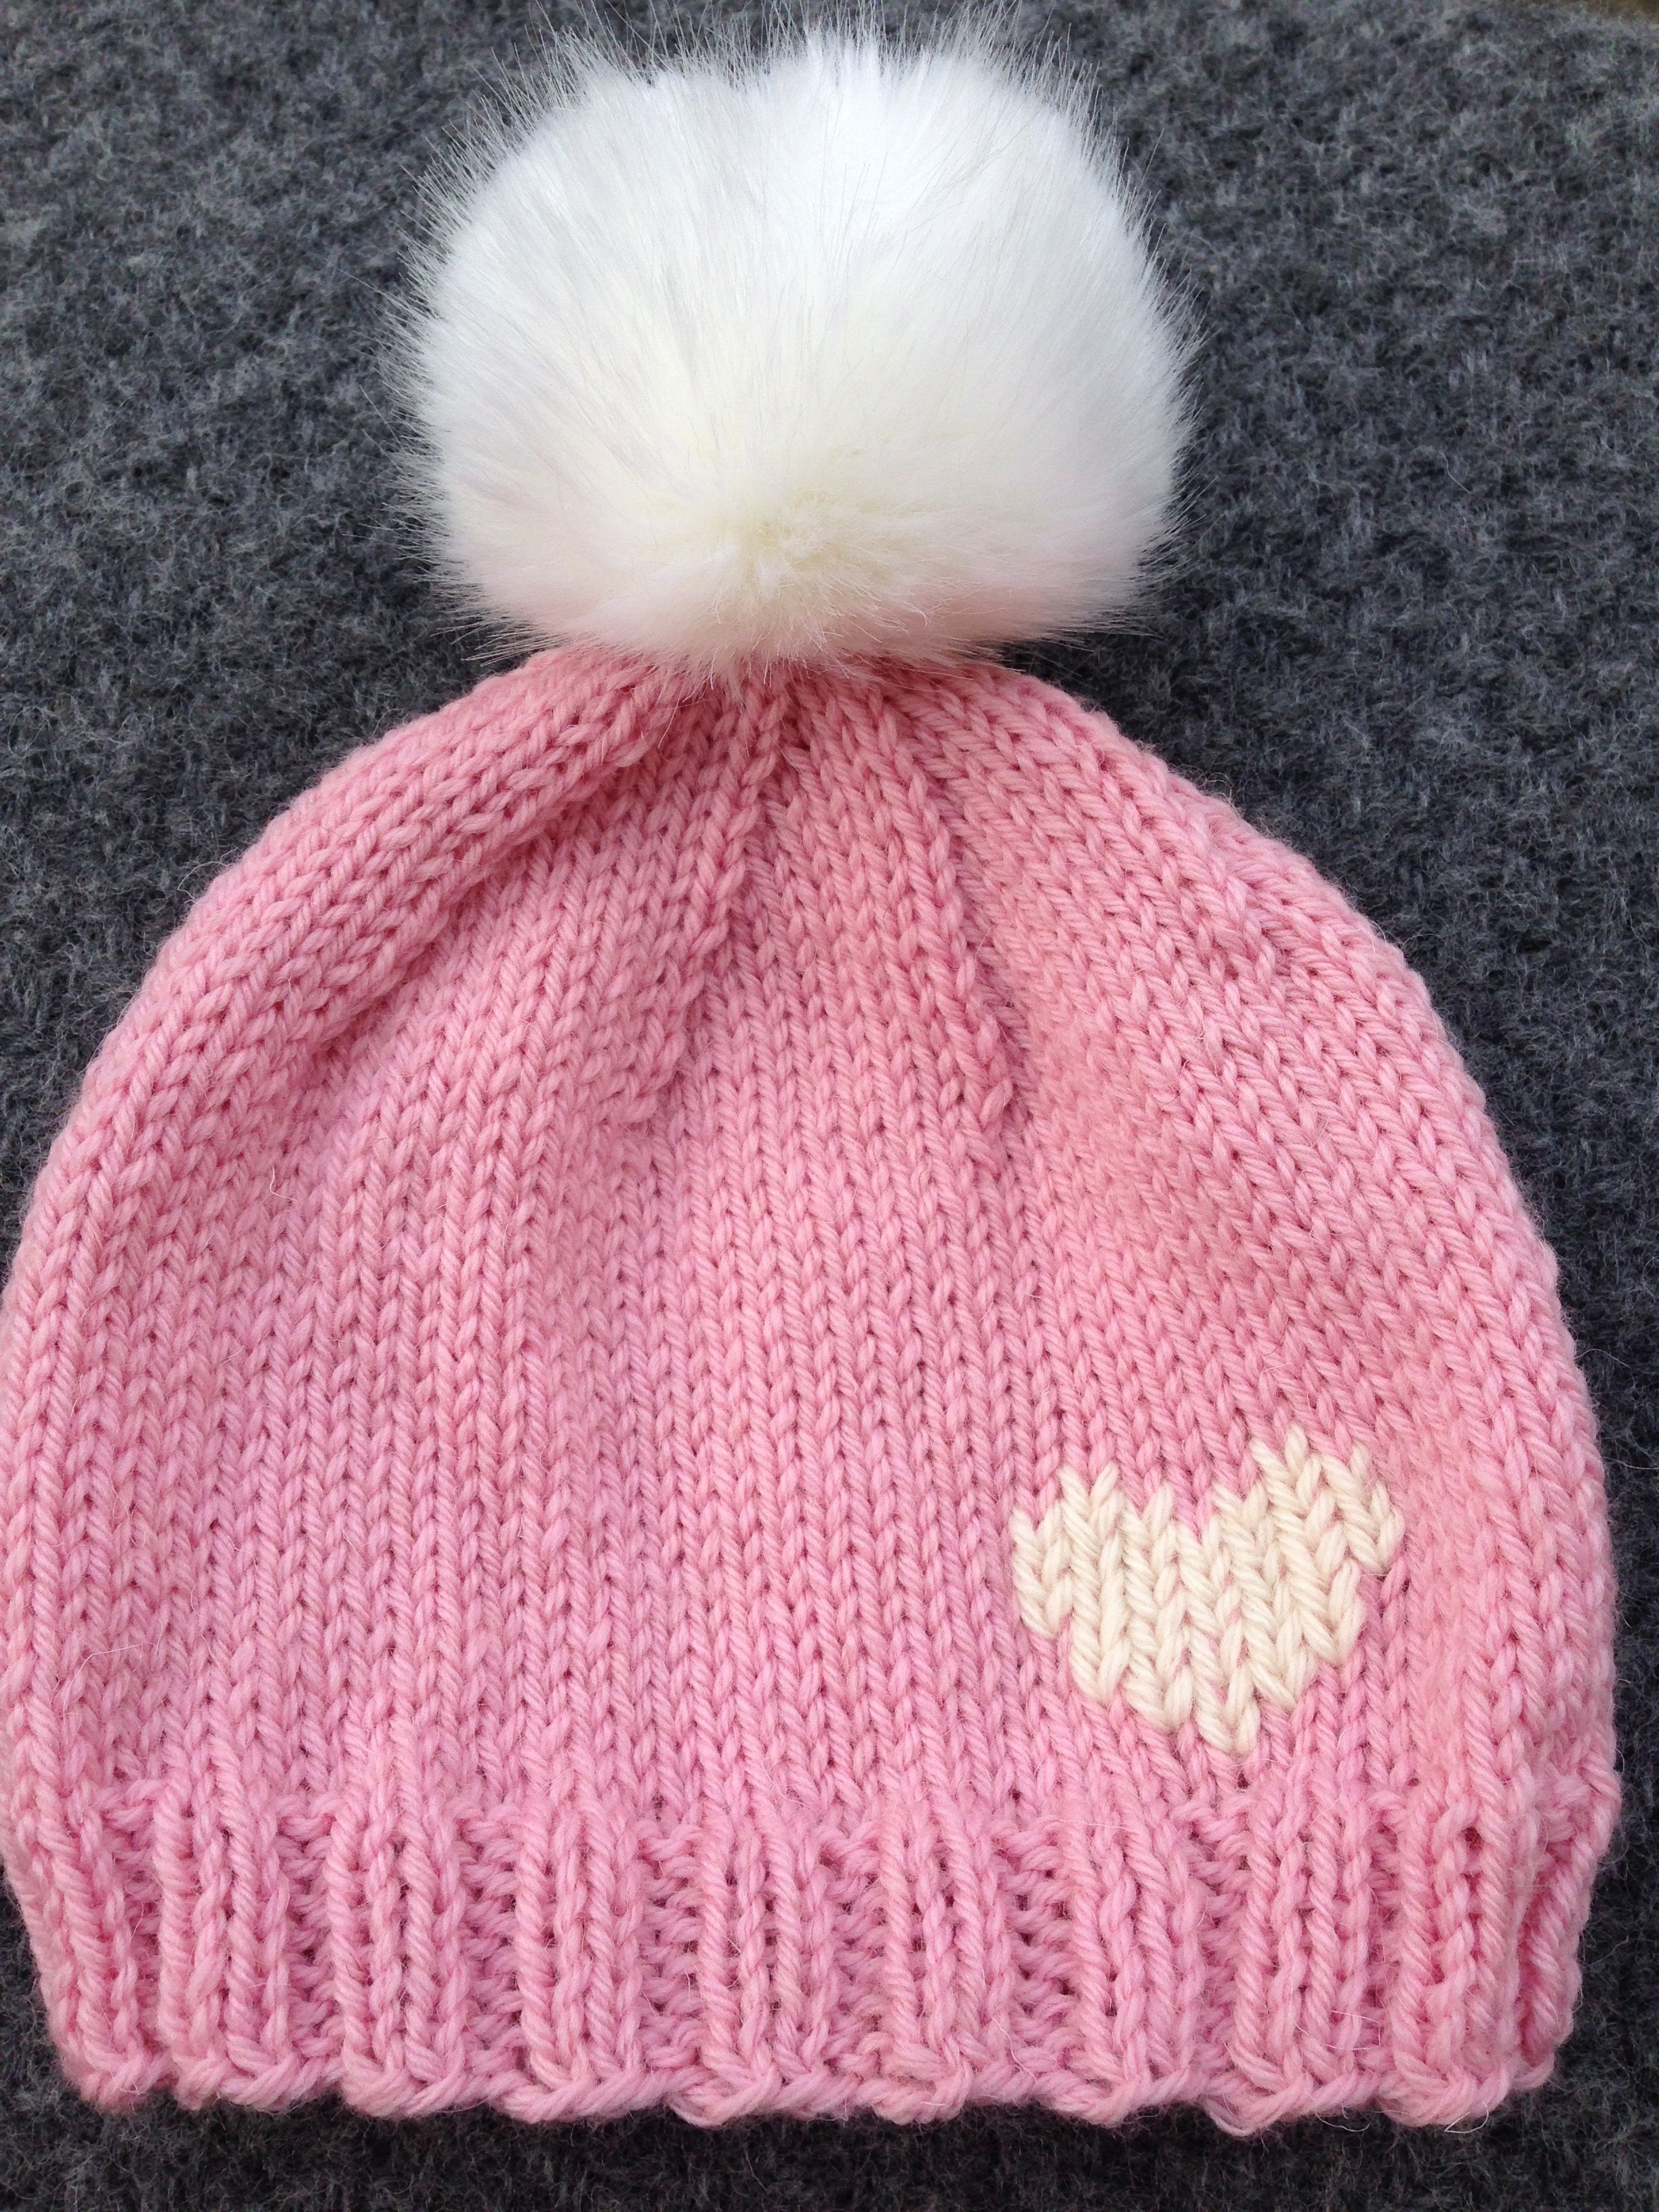 how many stitches to knit a newborn hat uk